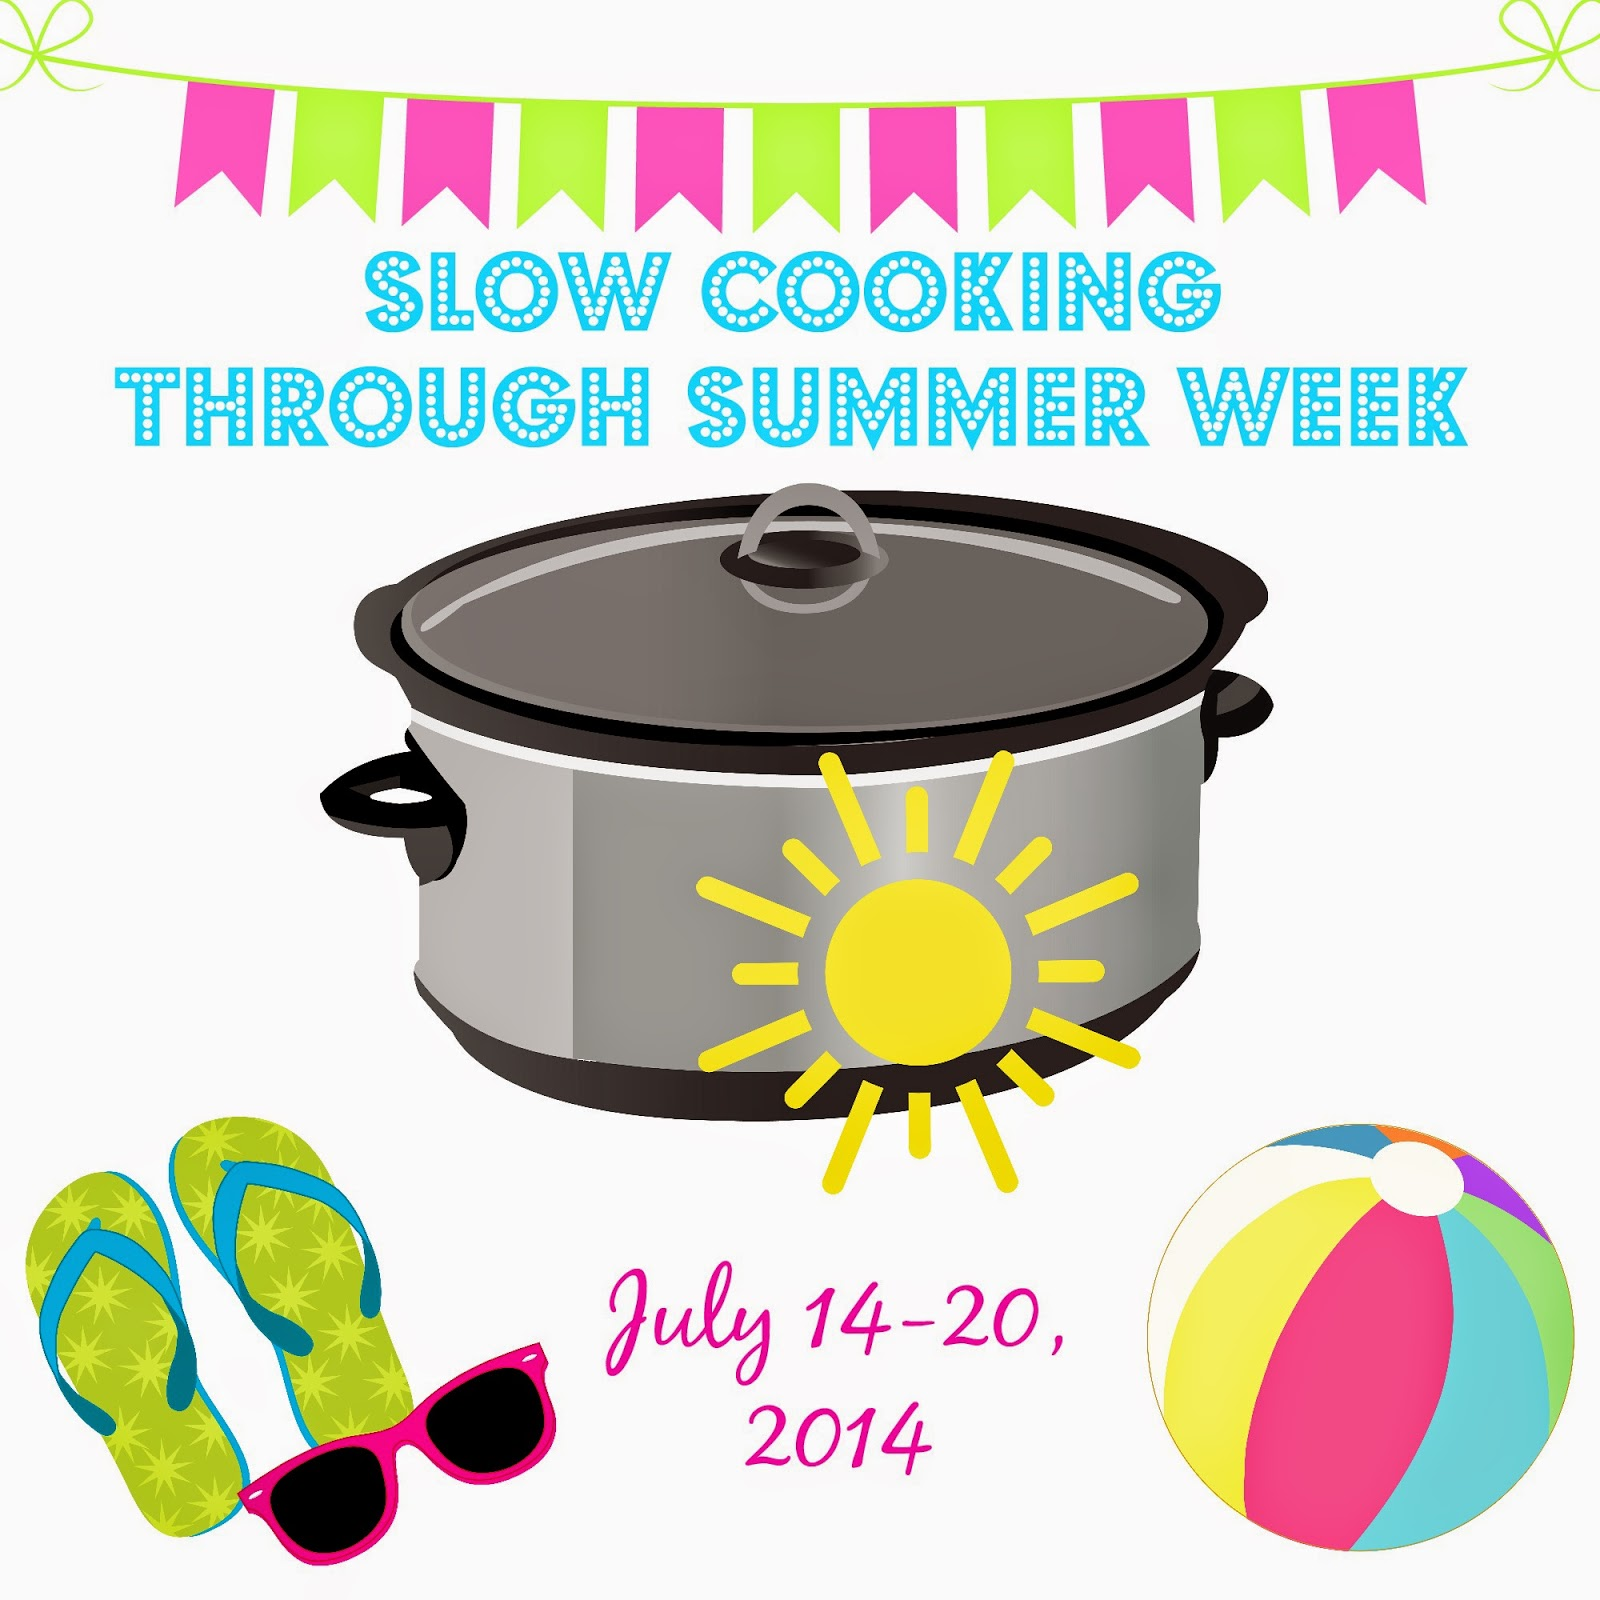 Slow Cooking Through Summer Week & a Ninja 3-in-1 Cooking System Giveaway via thefrugalfoodiemama.com & friends